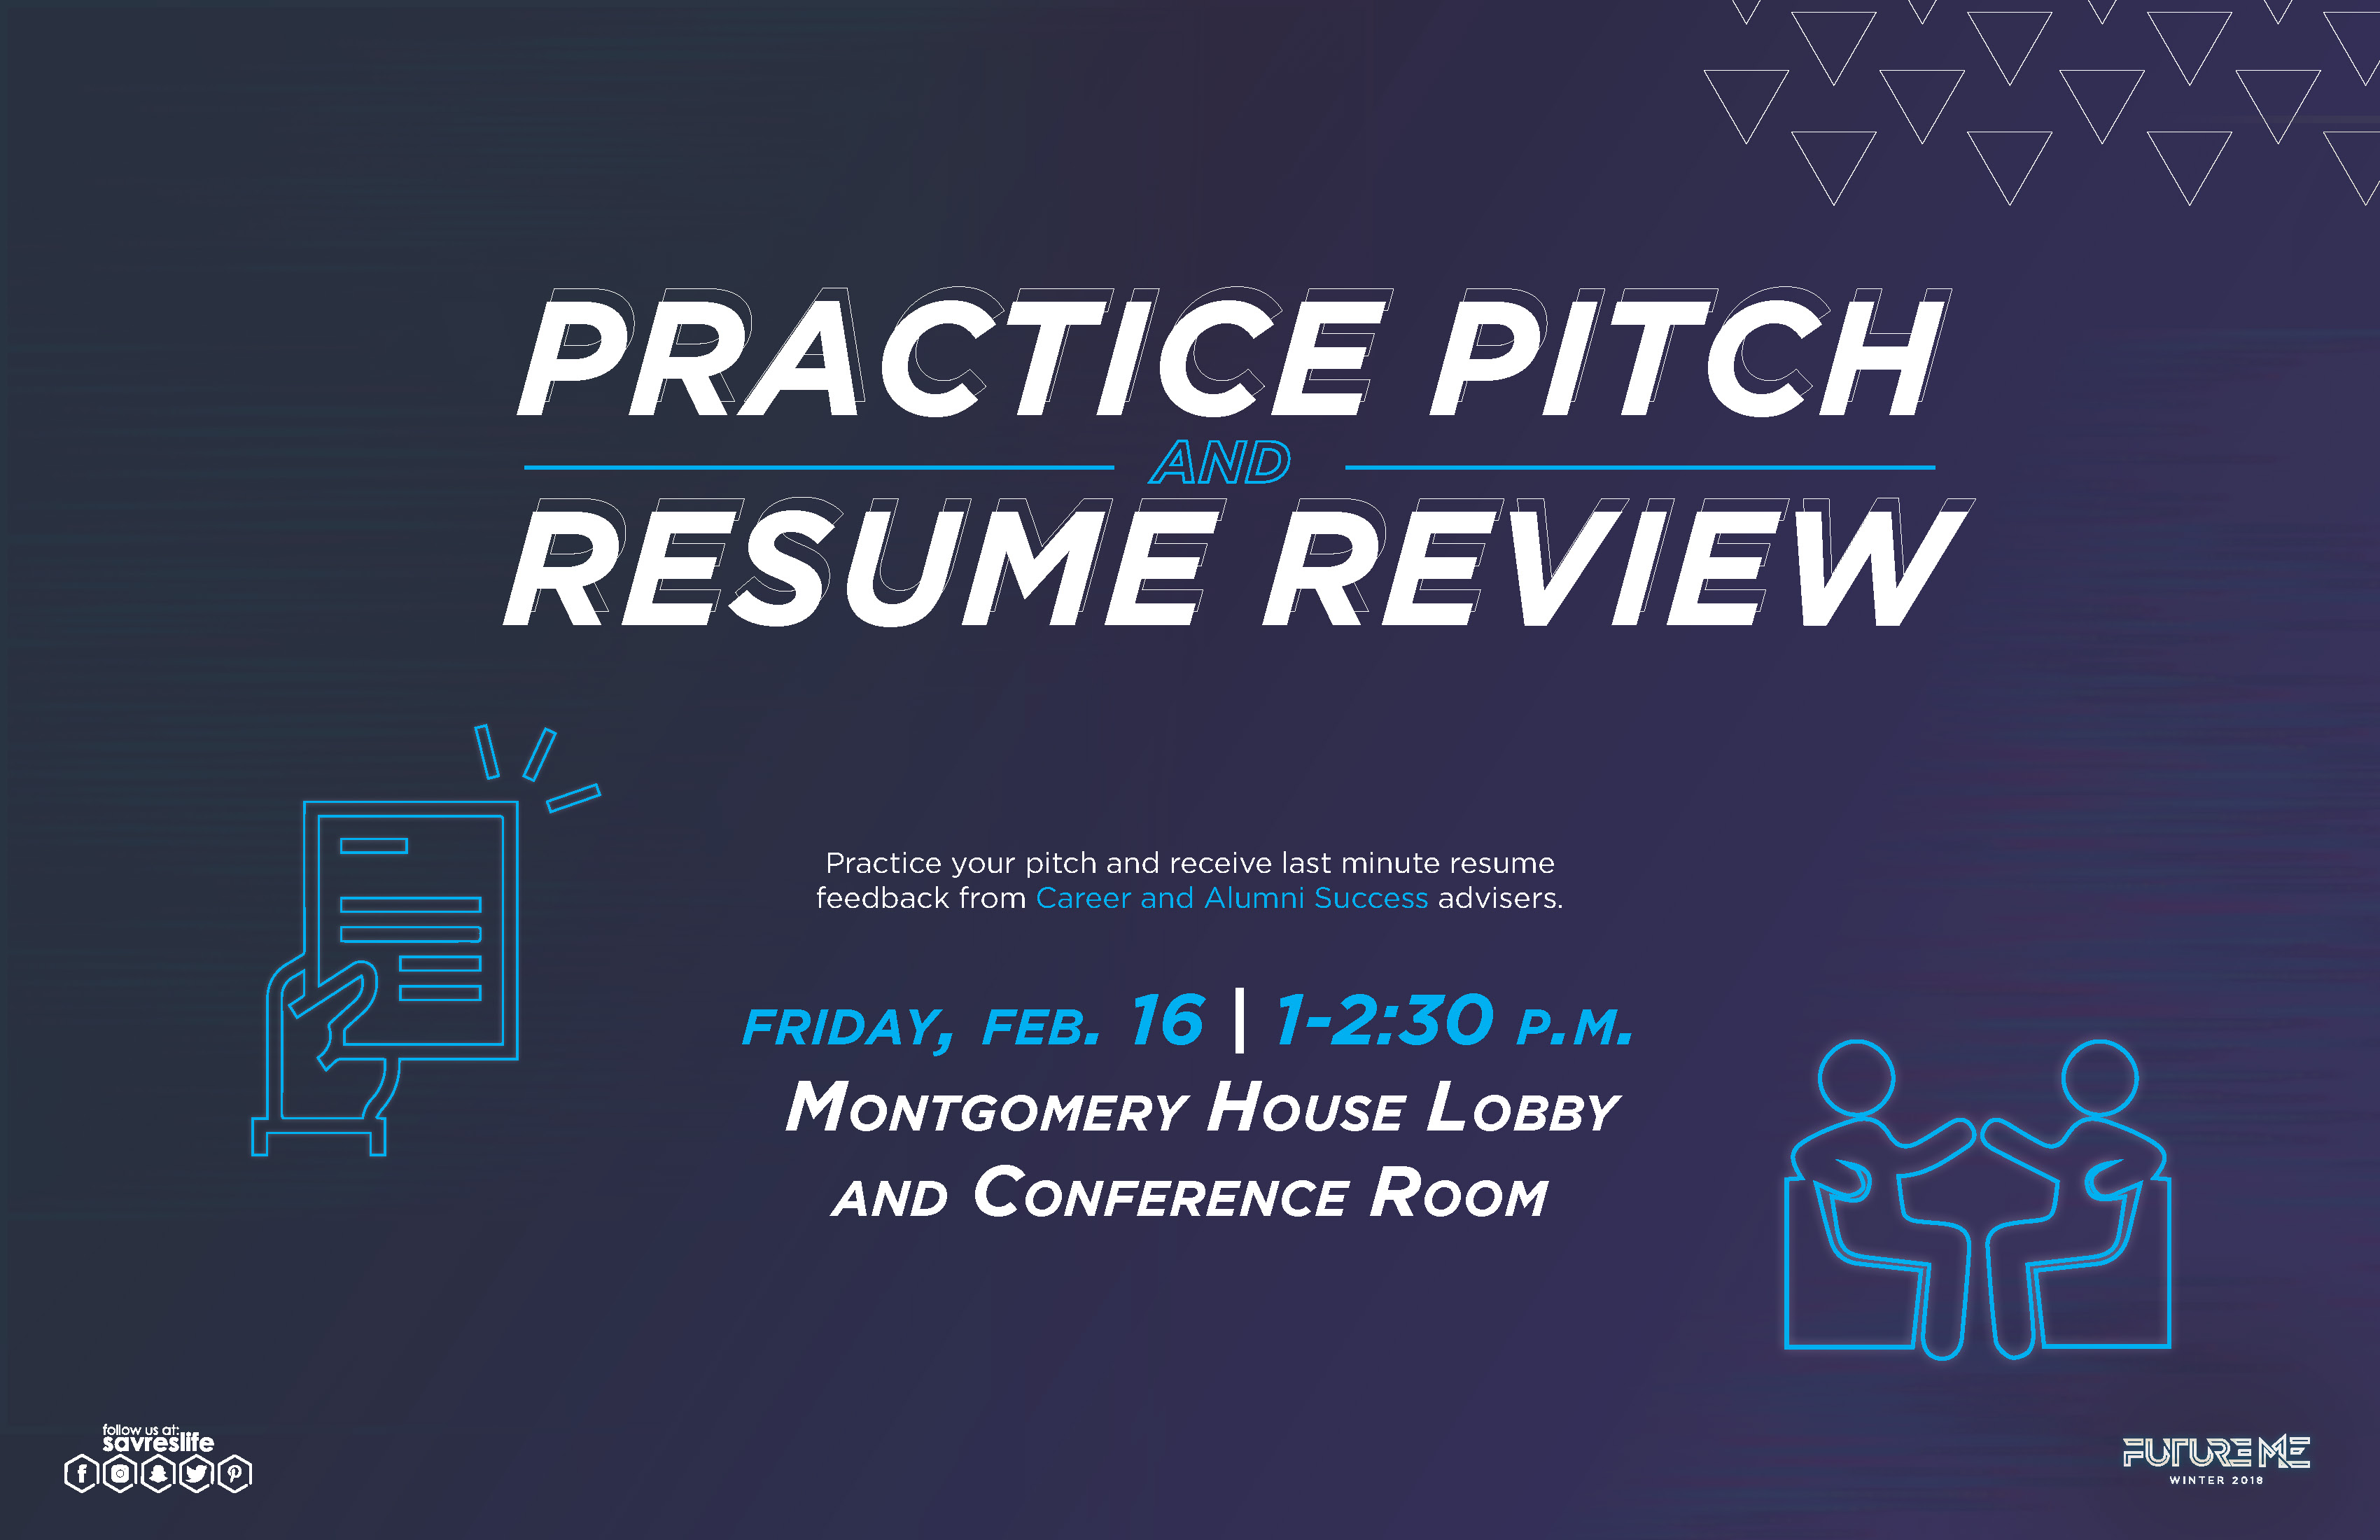 Practice Pitch and Resume Review